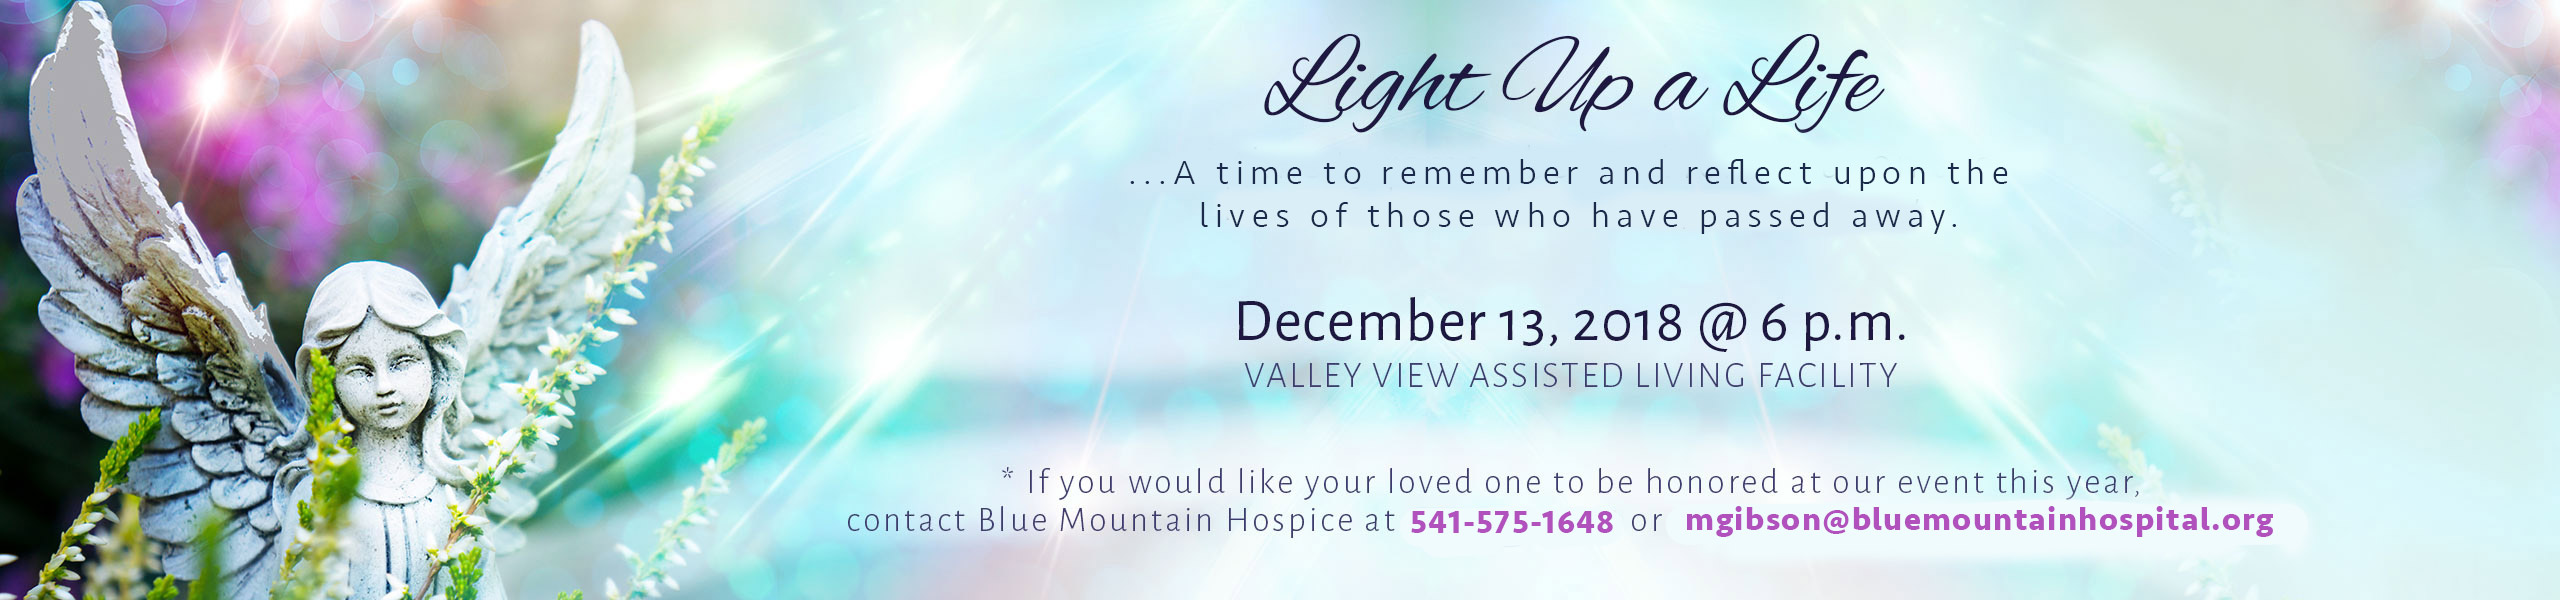 """""""Light Up A Life"""" - angel statue behind greenery with purple & blue reflections and rays of light from above in a soft aqua blue background"""